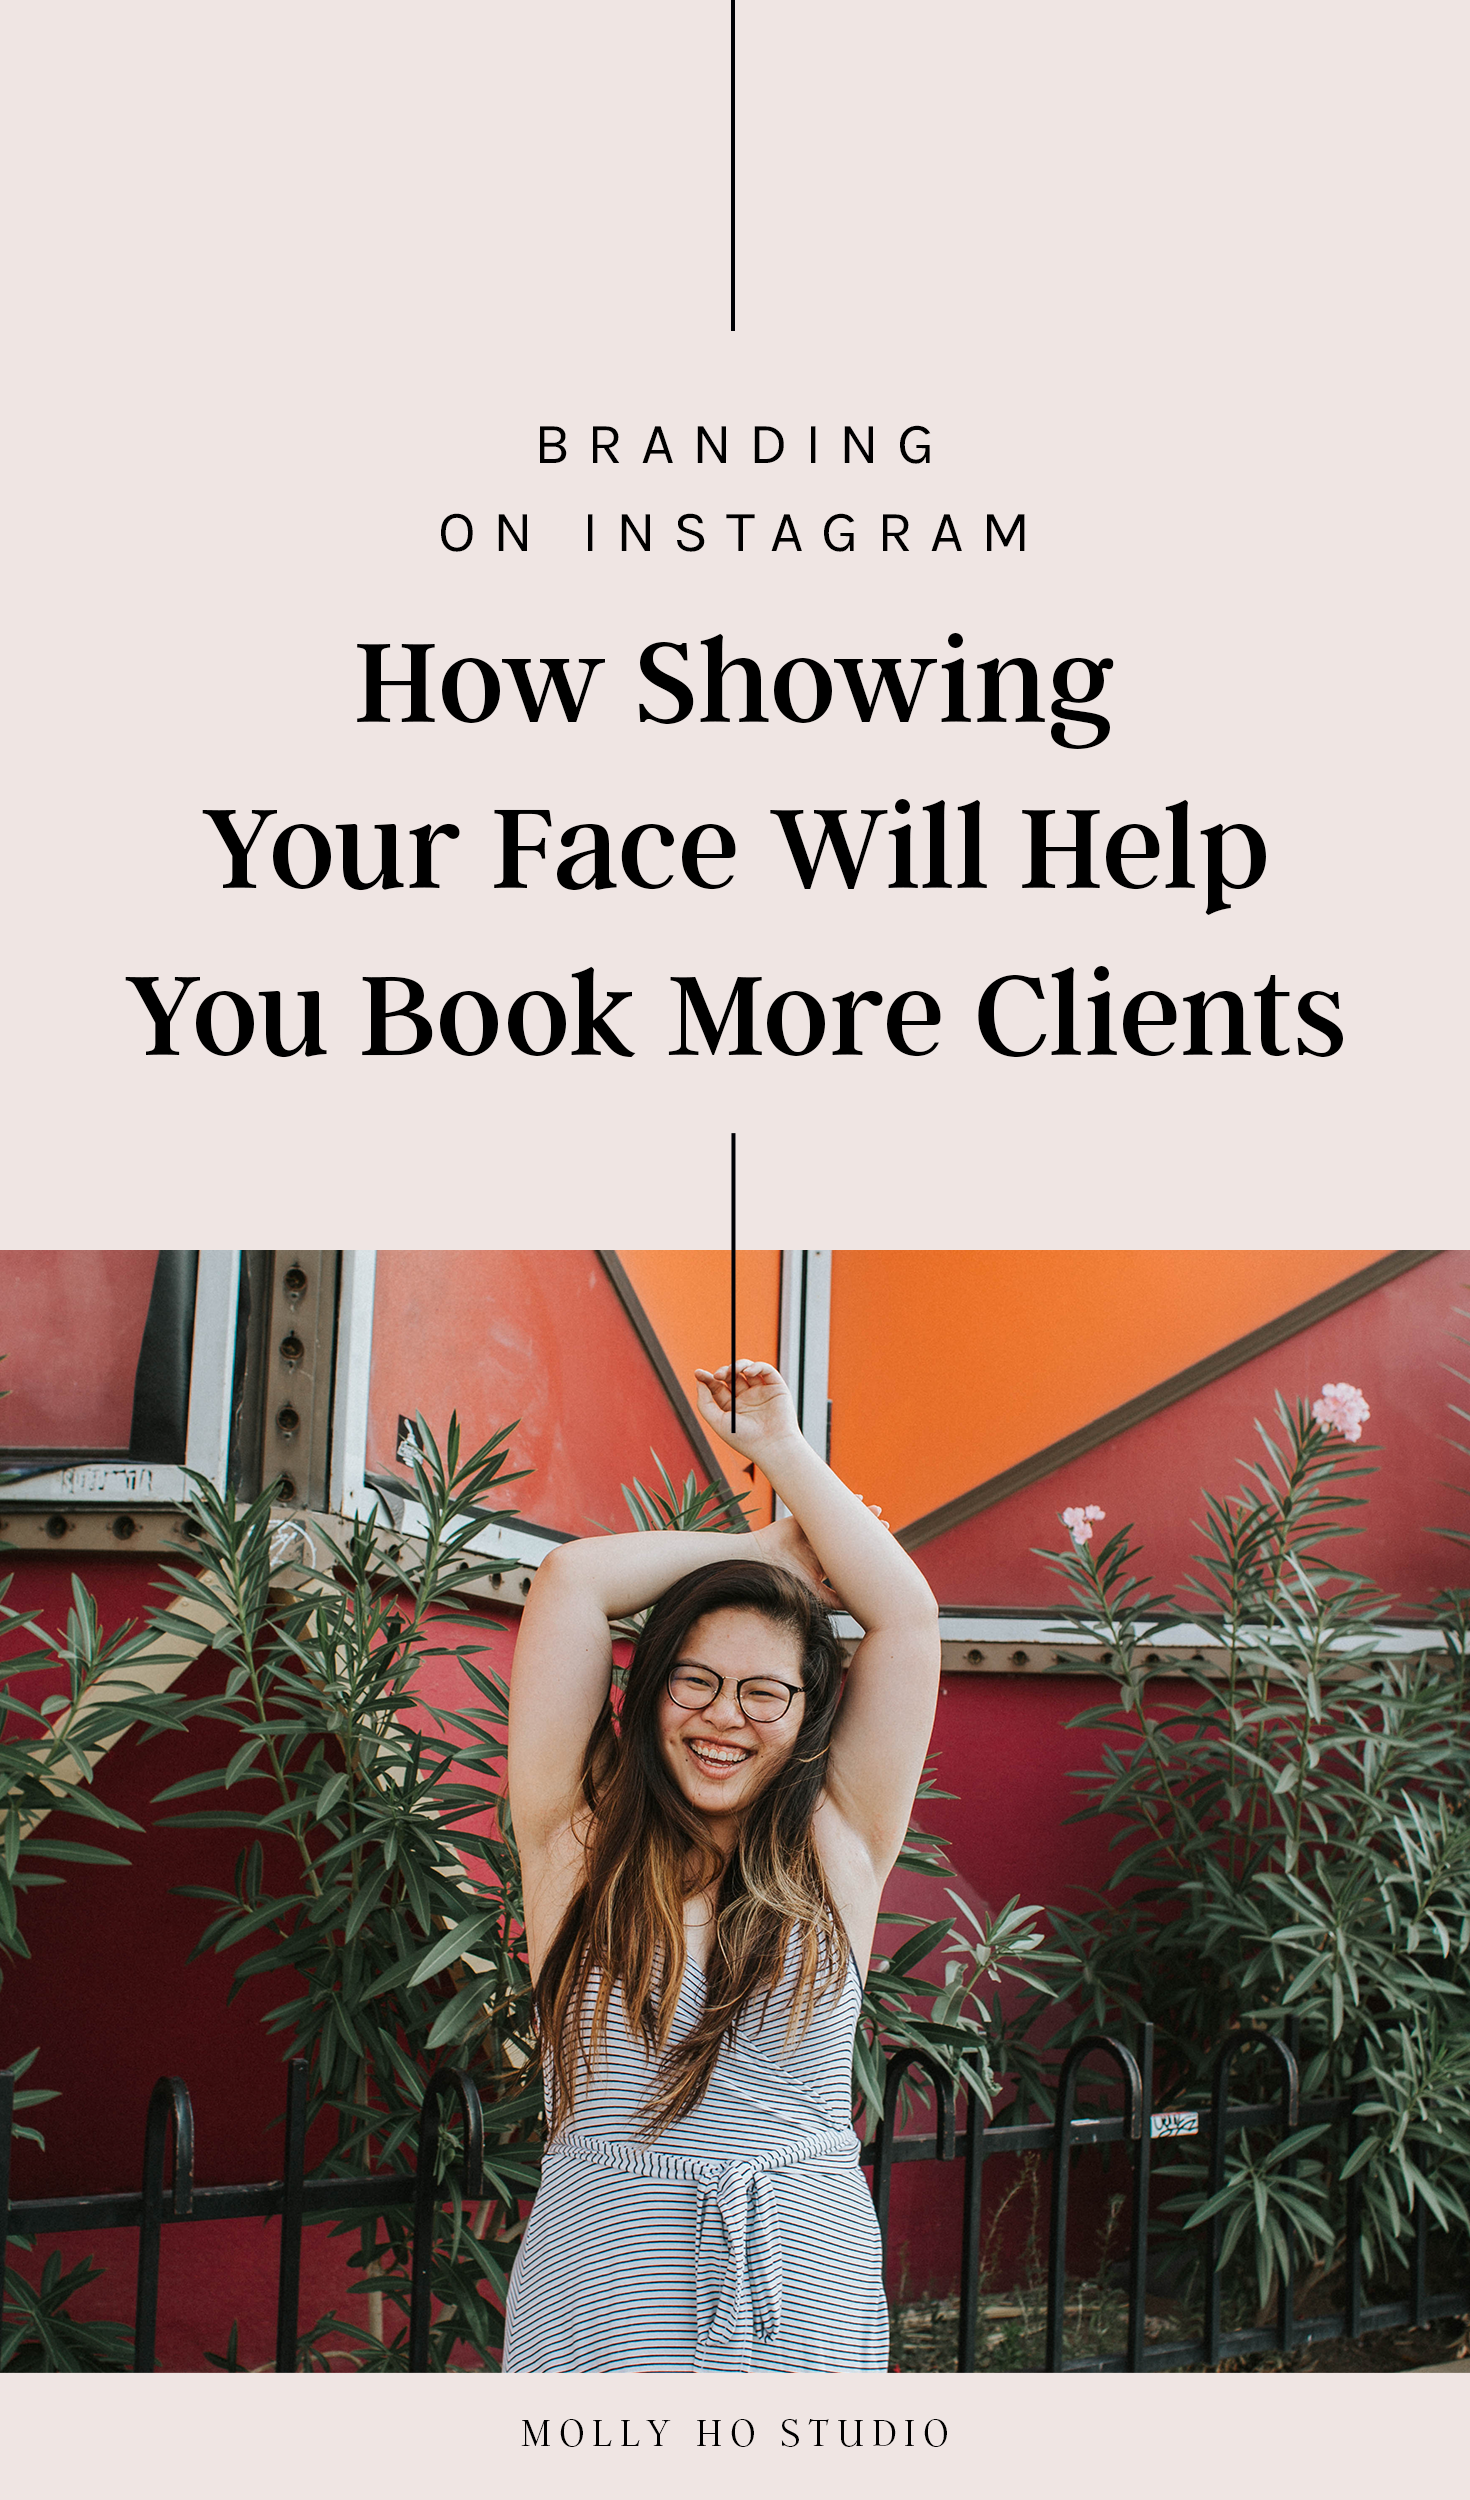 Branding On Instagram: How Showing Your Face Will Help You Book More Clients |How To Get Followers On Instagram | Grow Your Instagram Account Organically | Instagram Tips For Creative Entrepreneurs | Instagram Branding Strategy | Increase Your Increase Engagement | Social Media Tips For Small Businesses and Personal Brands | Molly Ho Studio